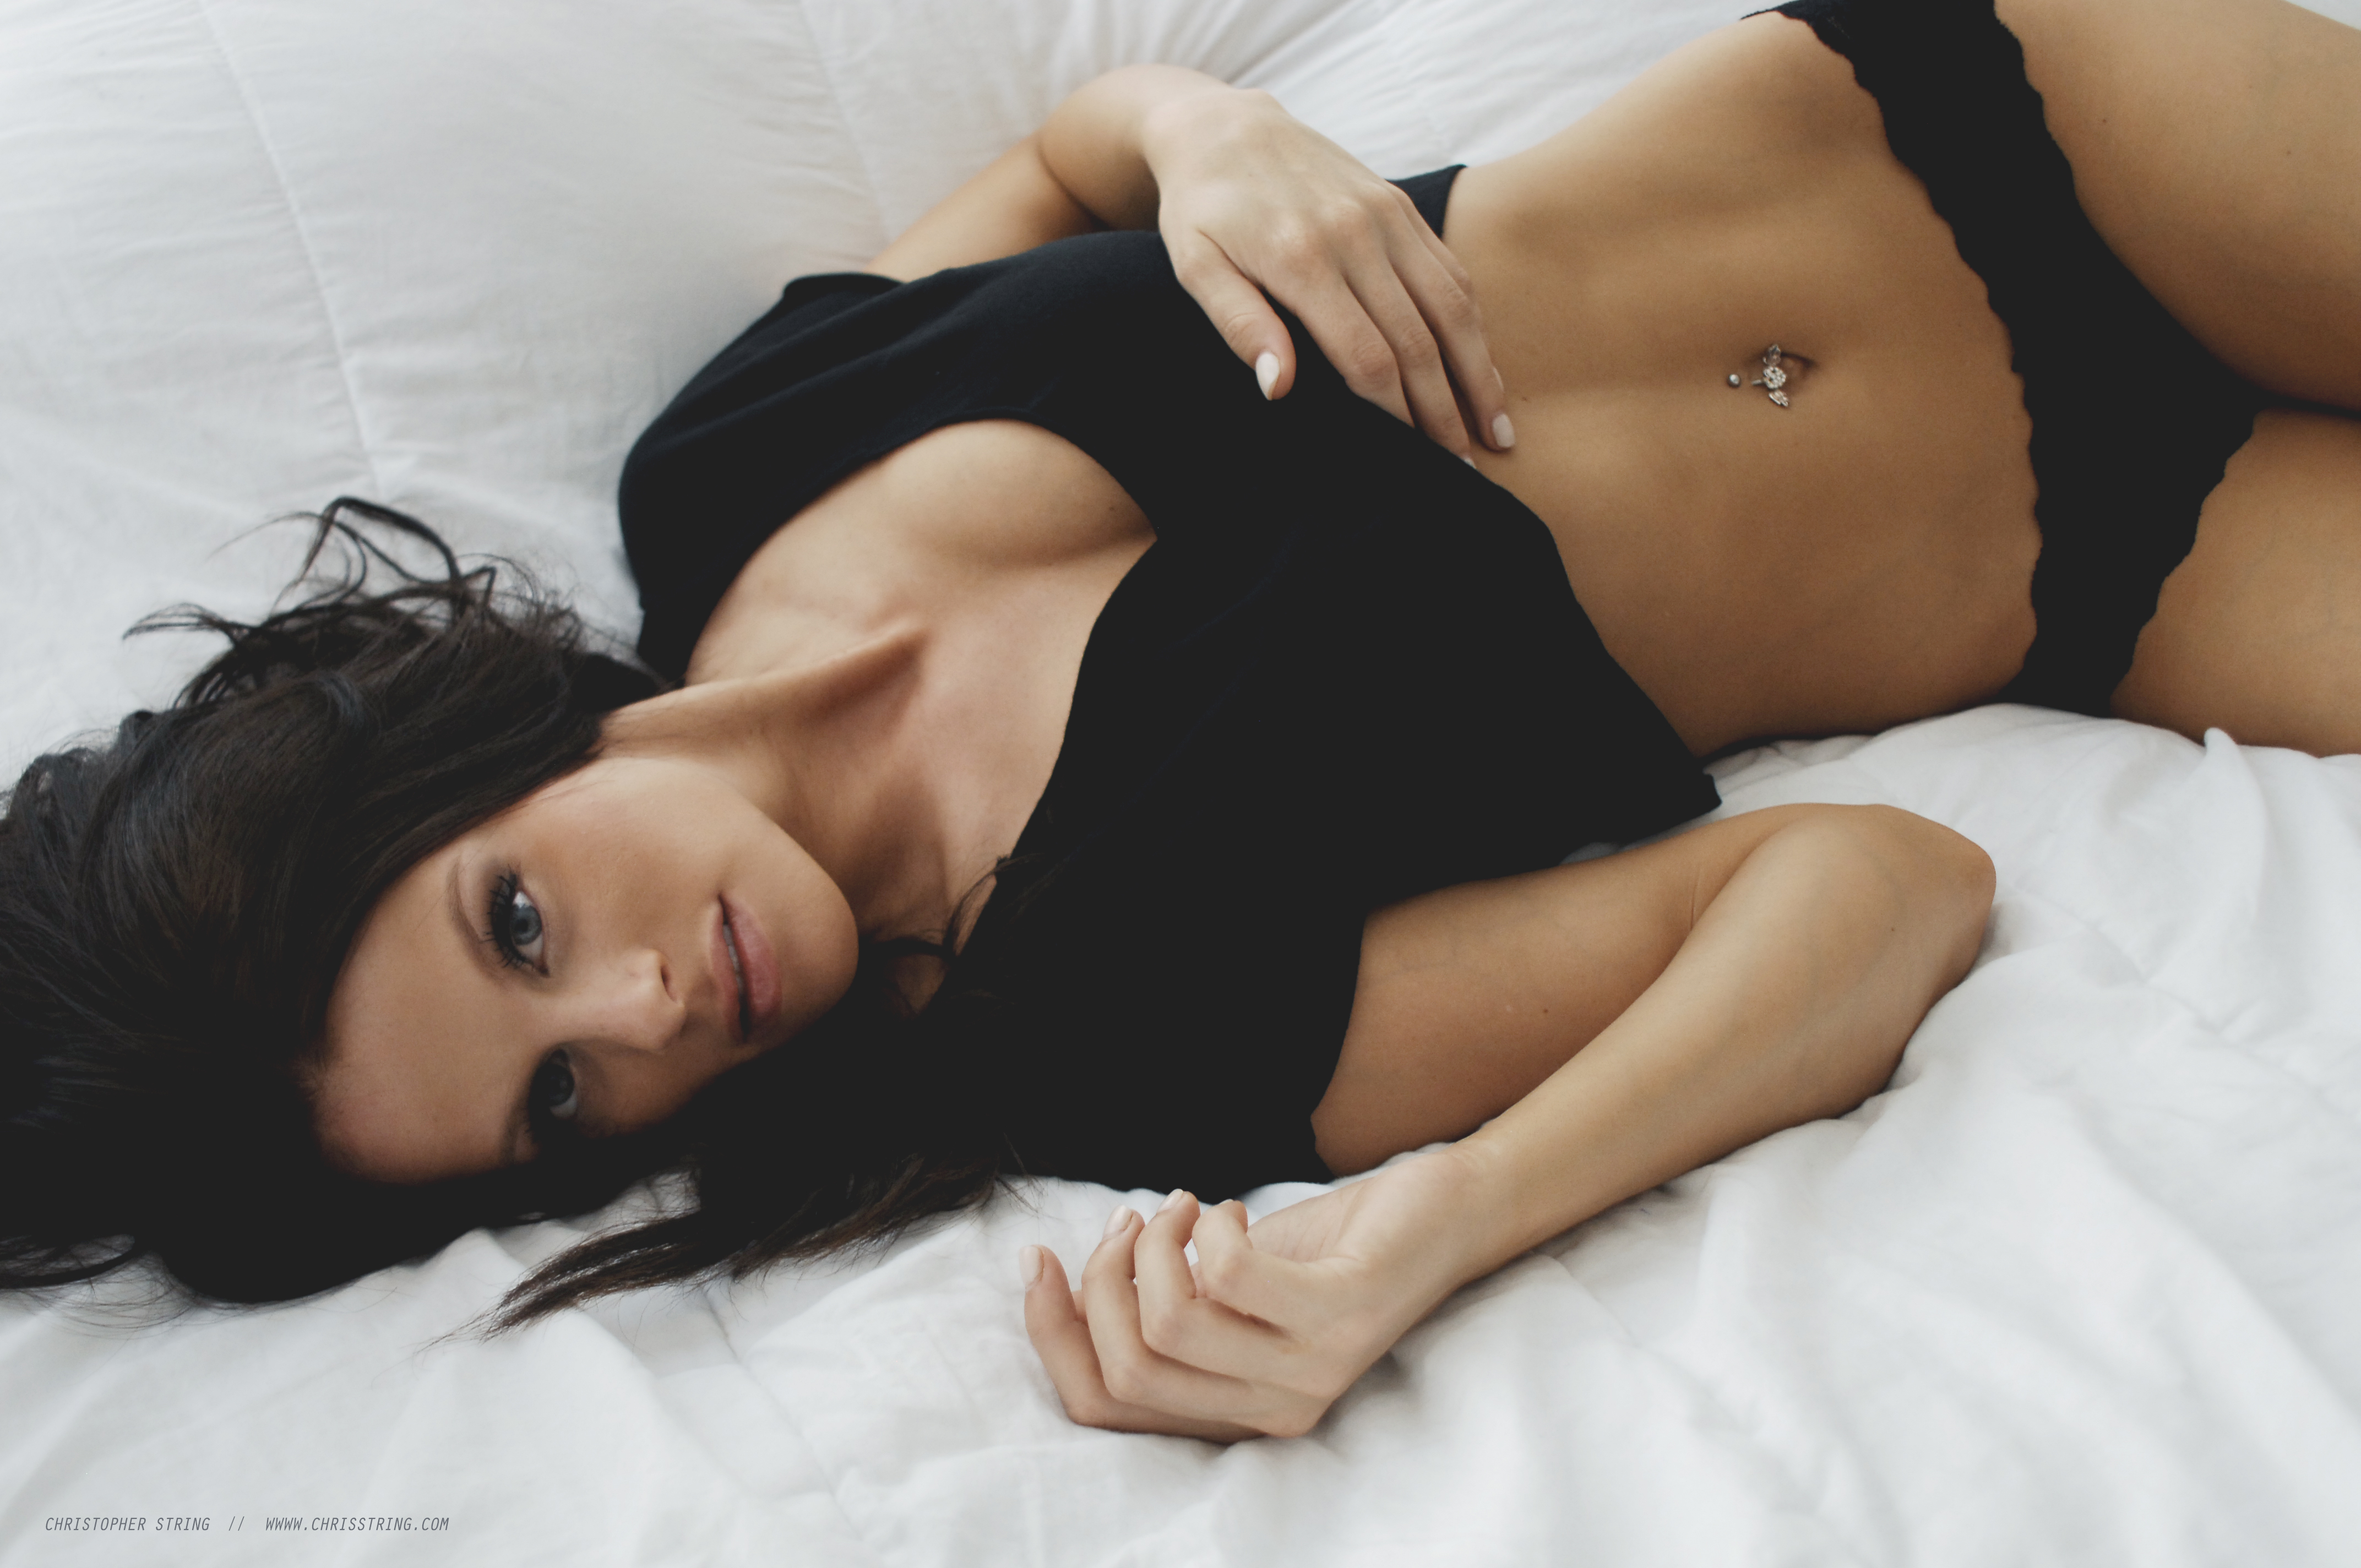 Woman in black top and underwear on white sheets